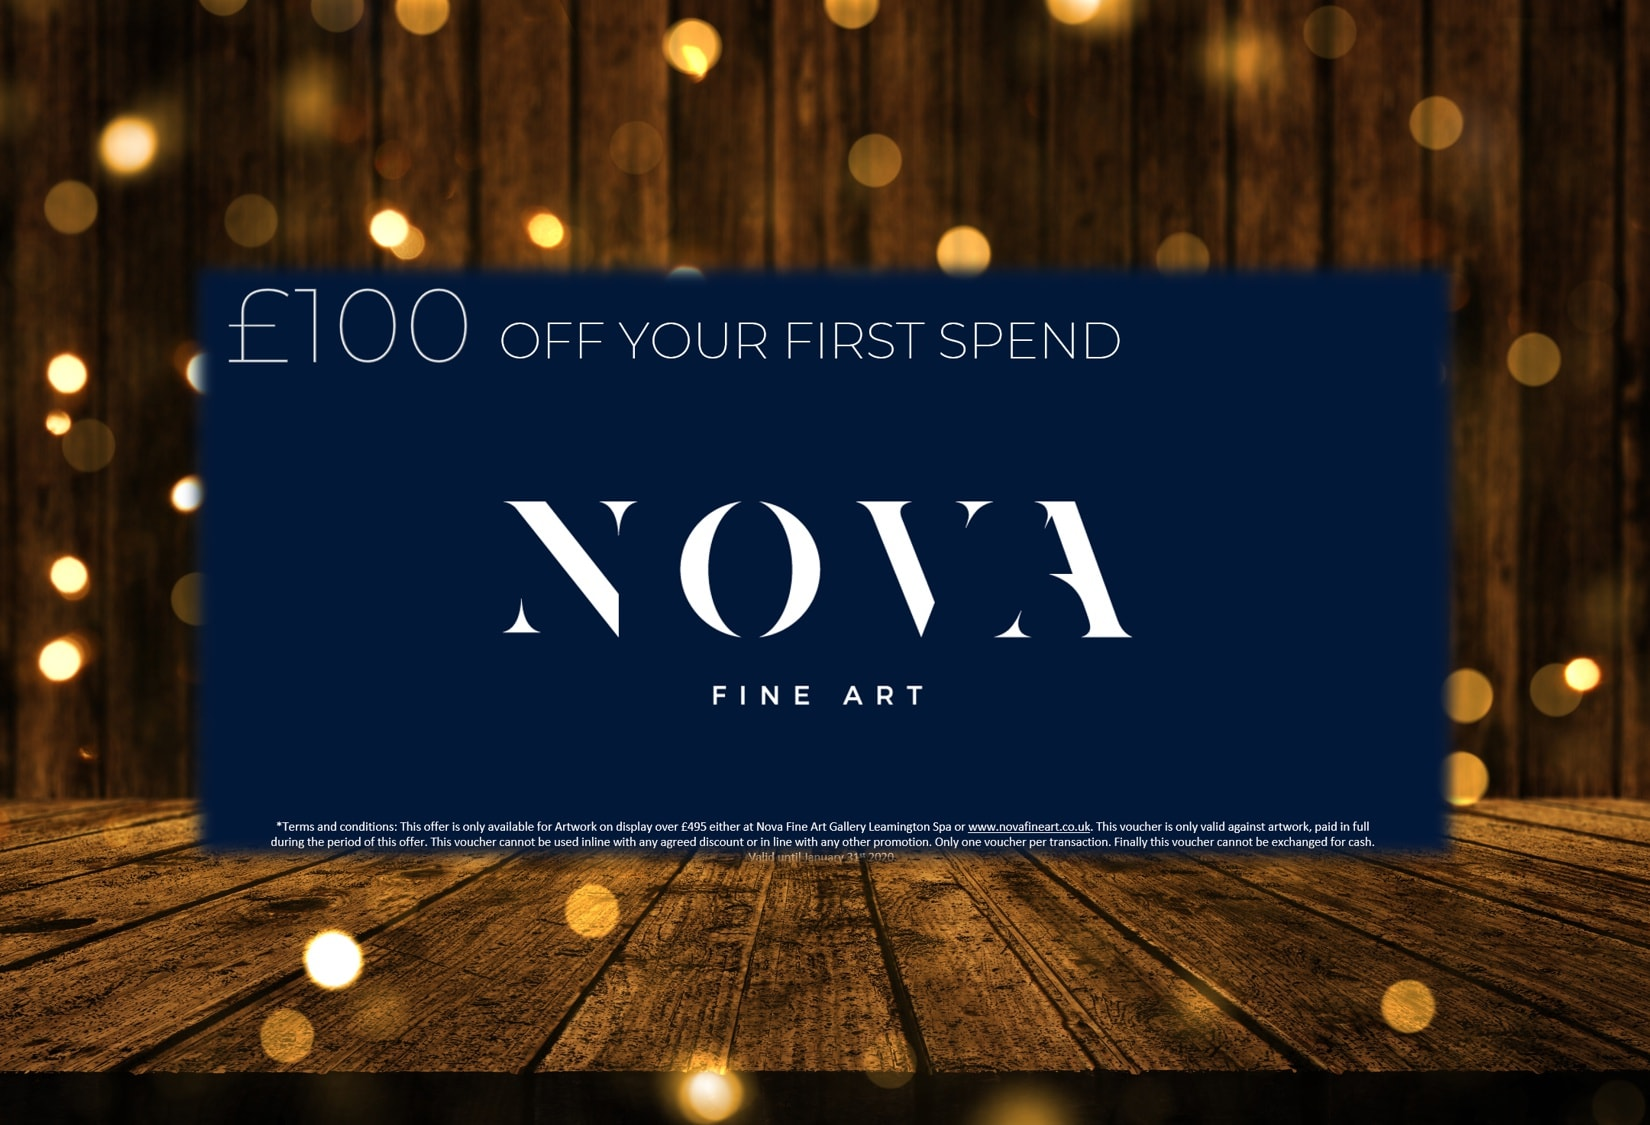 Celebrate the New Year in style, with £100* towards your personal art fund.